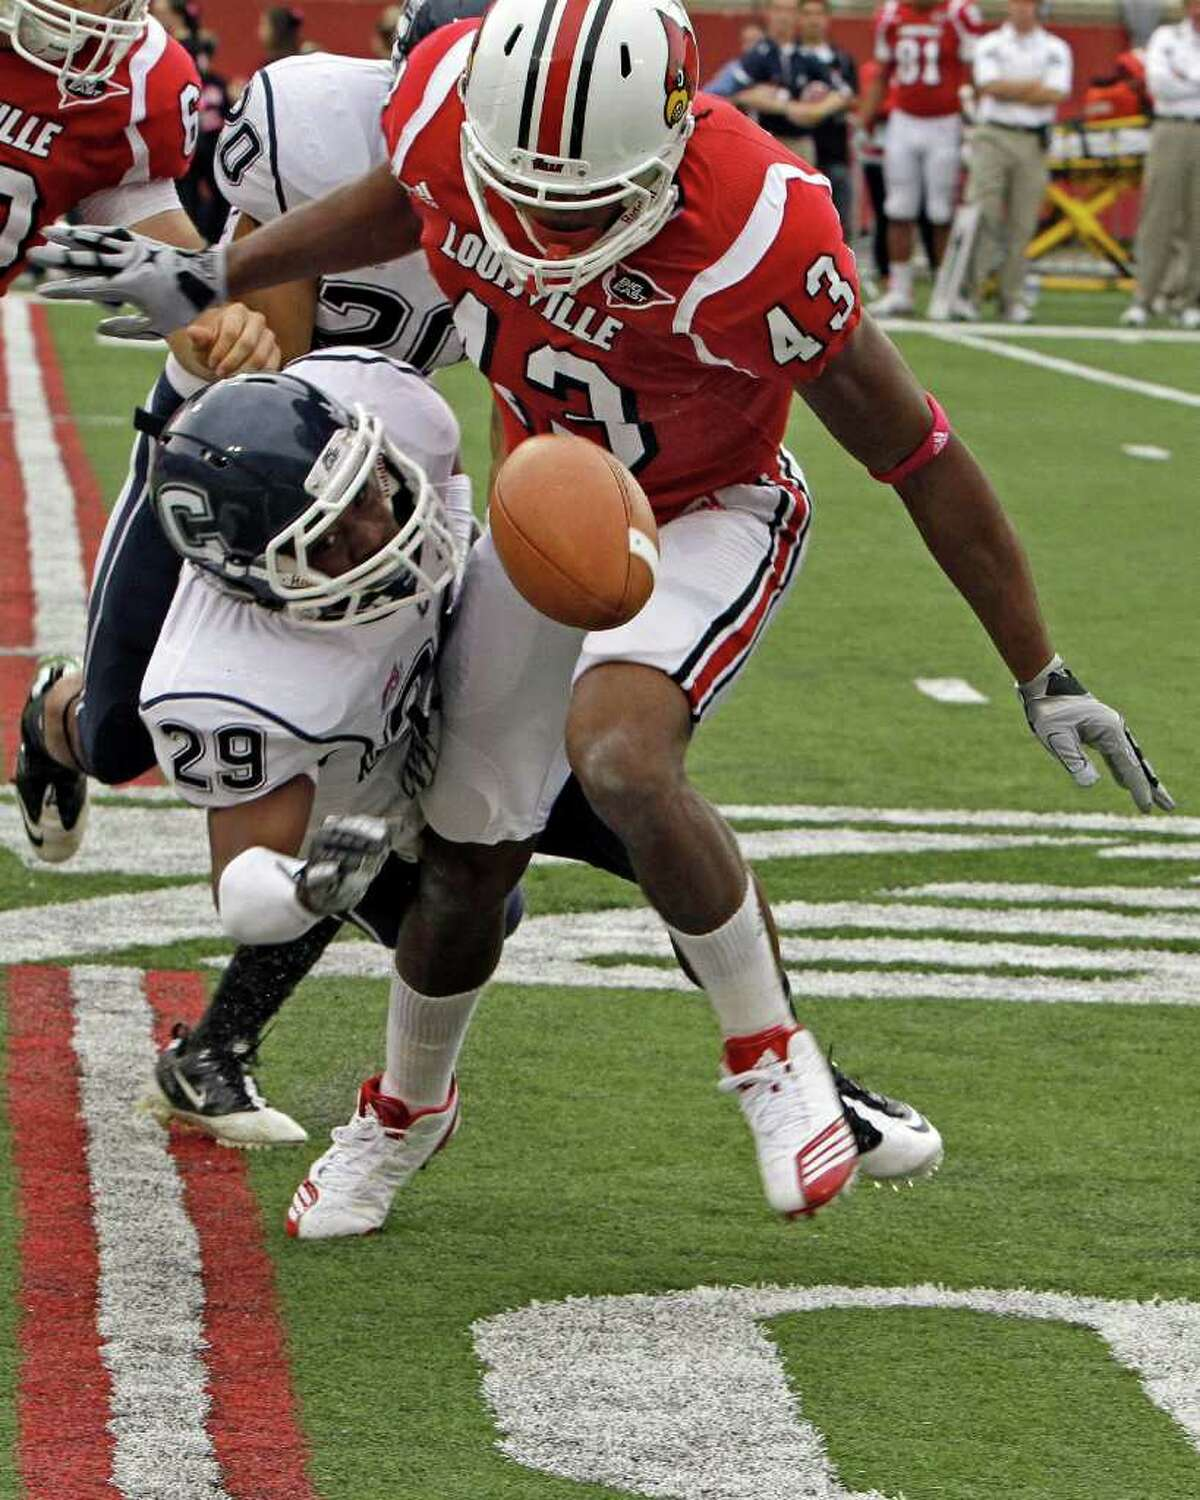 Connecticut's Taylor Mack (29) mishandles a punt and is clobbered by Louisville's Deon Rogers (43) during first half action in their NCAA college football game at Cardinal Stadium, Saturday, Oct. 23, 2010, in Louisville, Ky. Rogers recovered the fumble that led to Louisville first touchdown. (AP Photo/Garry Jones)